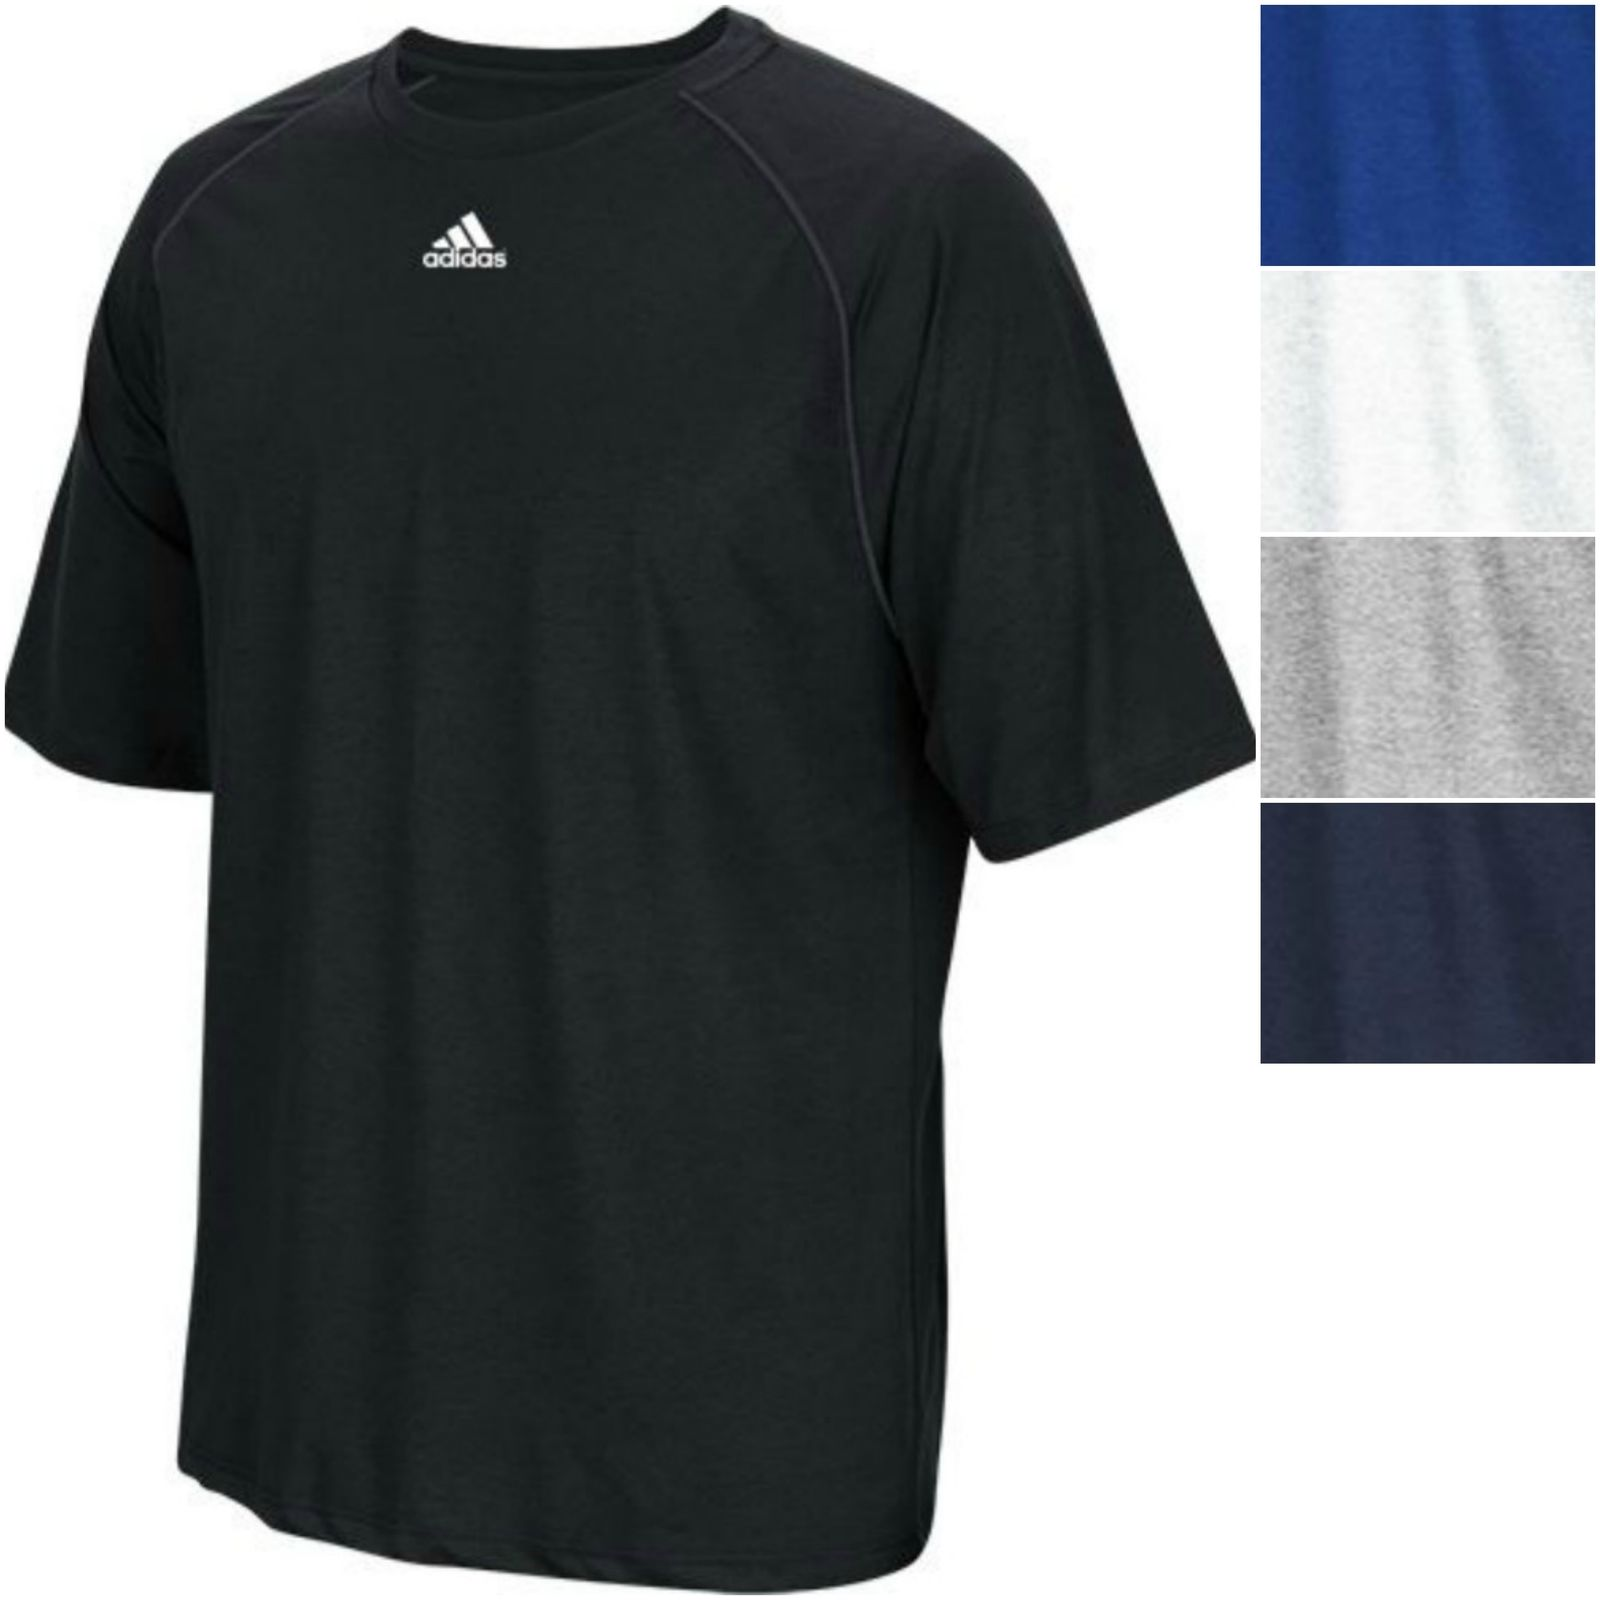 Adidas Men S Climalite Short Sleeve Tee Athletic Relaxed